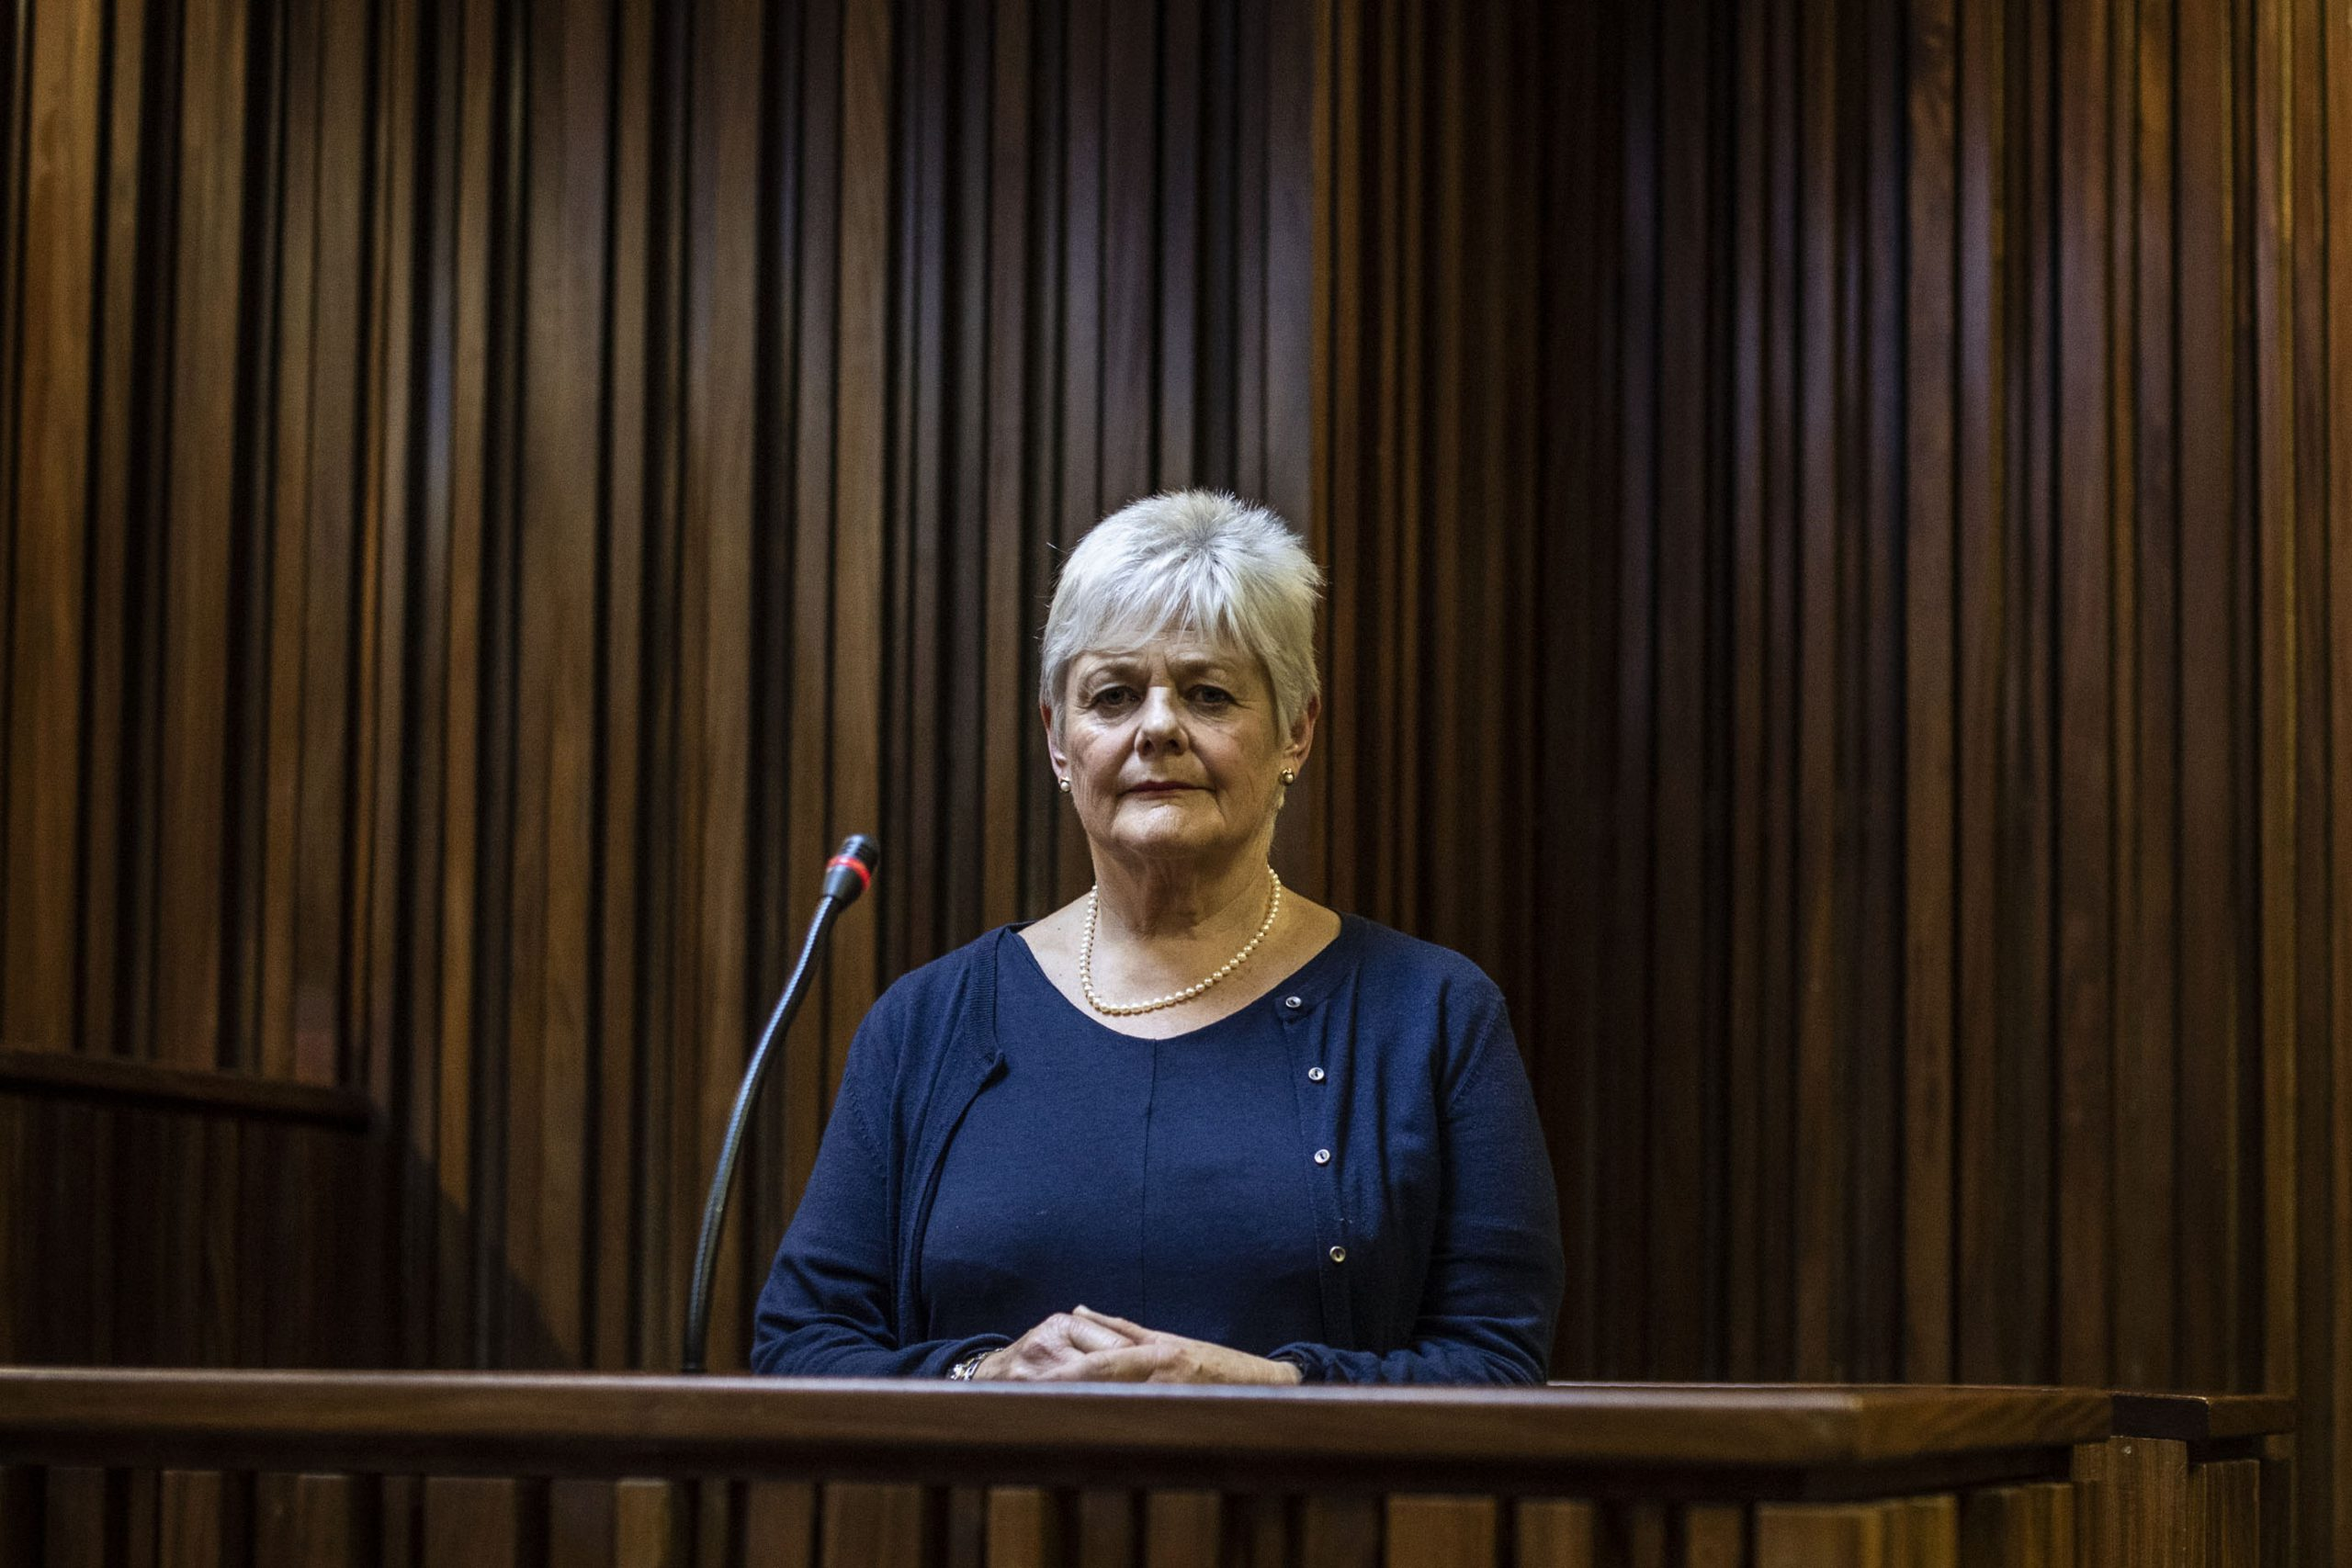 22 January 2020: Jill Burger testifying at the reopened inquest into the death of her brother, anti-apartheid activist Neil Aggett, at the South Gauteng High Court.